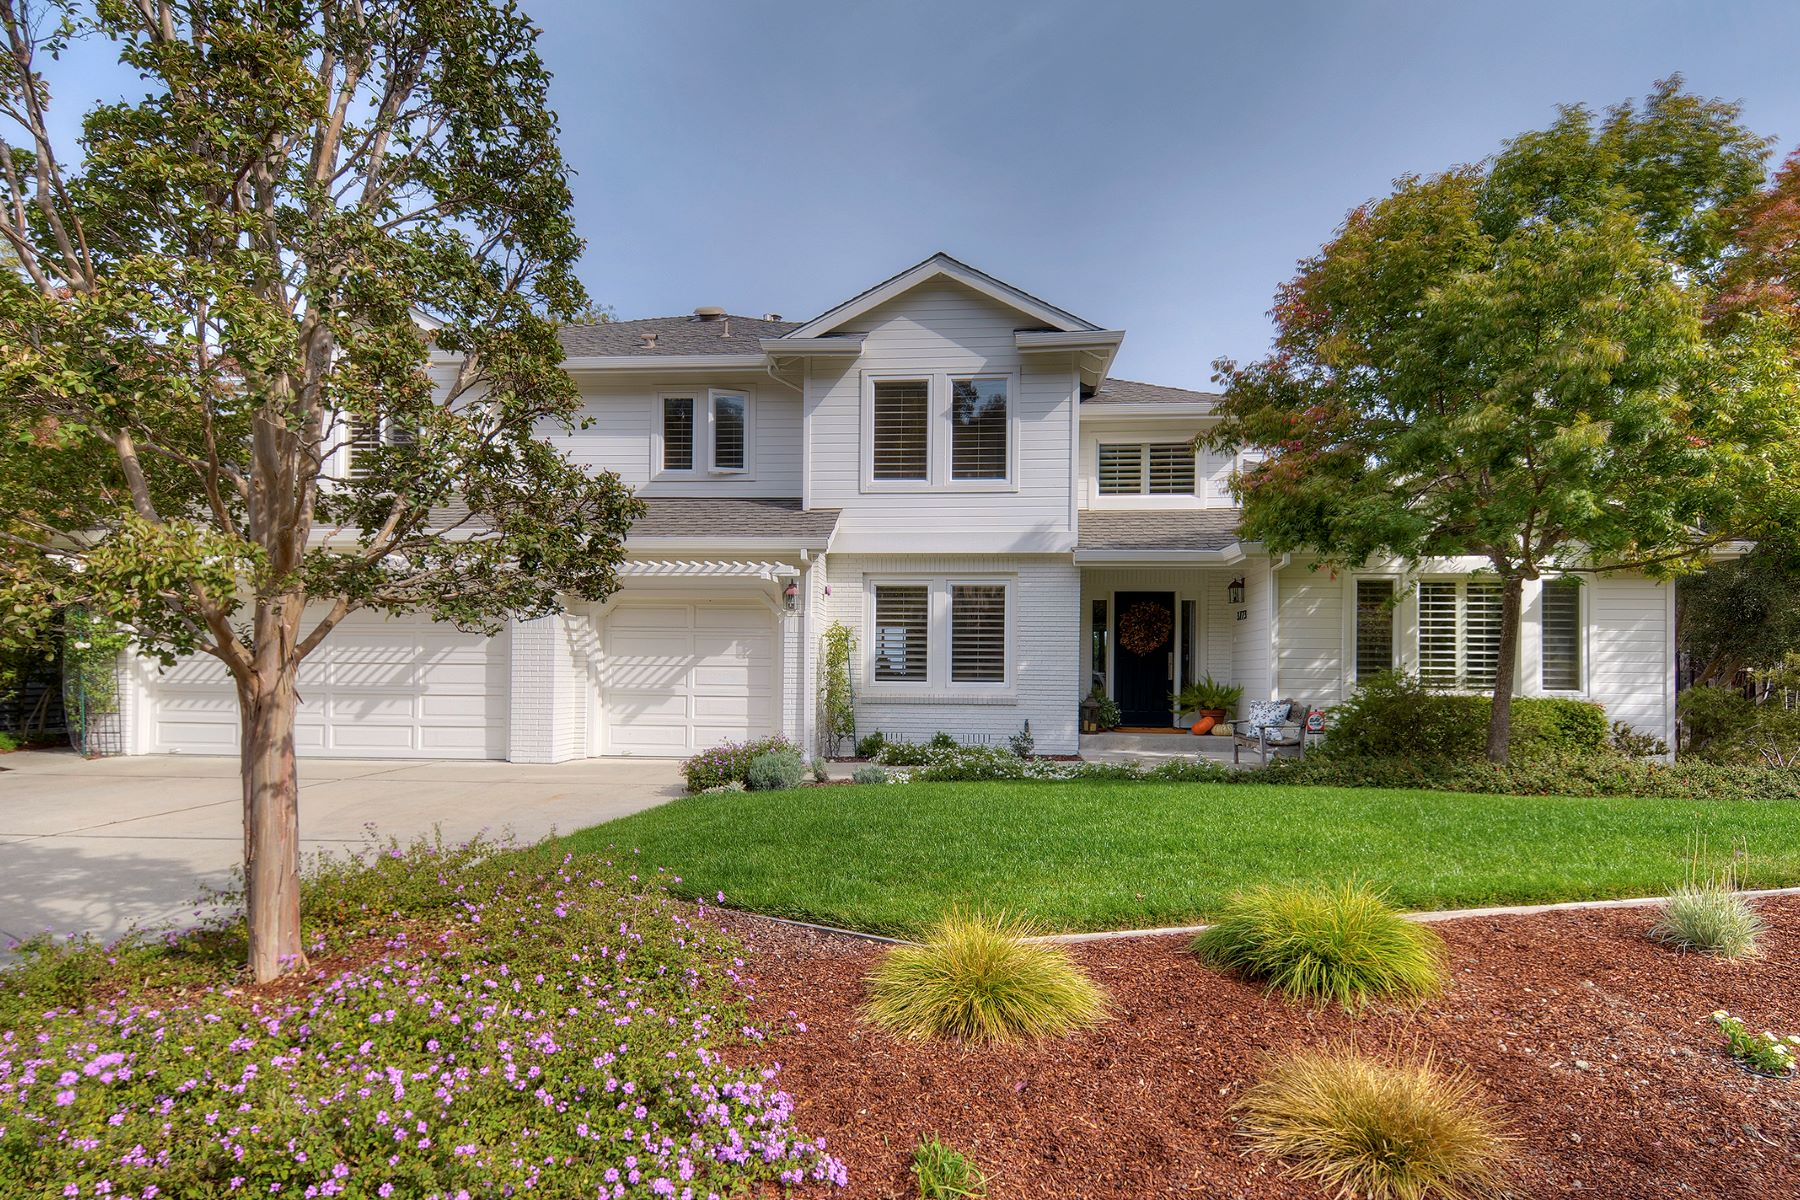 Single Family Home for Active at Spectacular Bay View 3723 Jefferson Court Redwood City, California 94062 United States